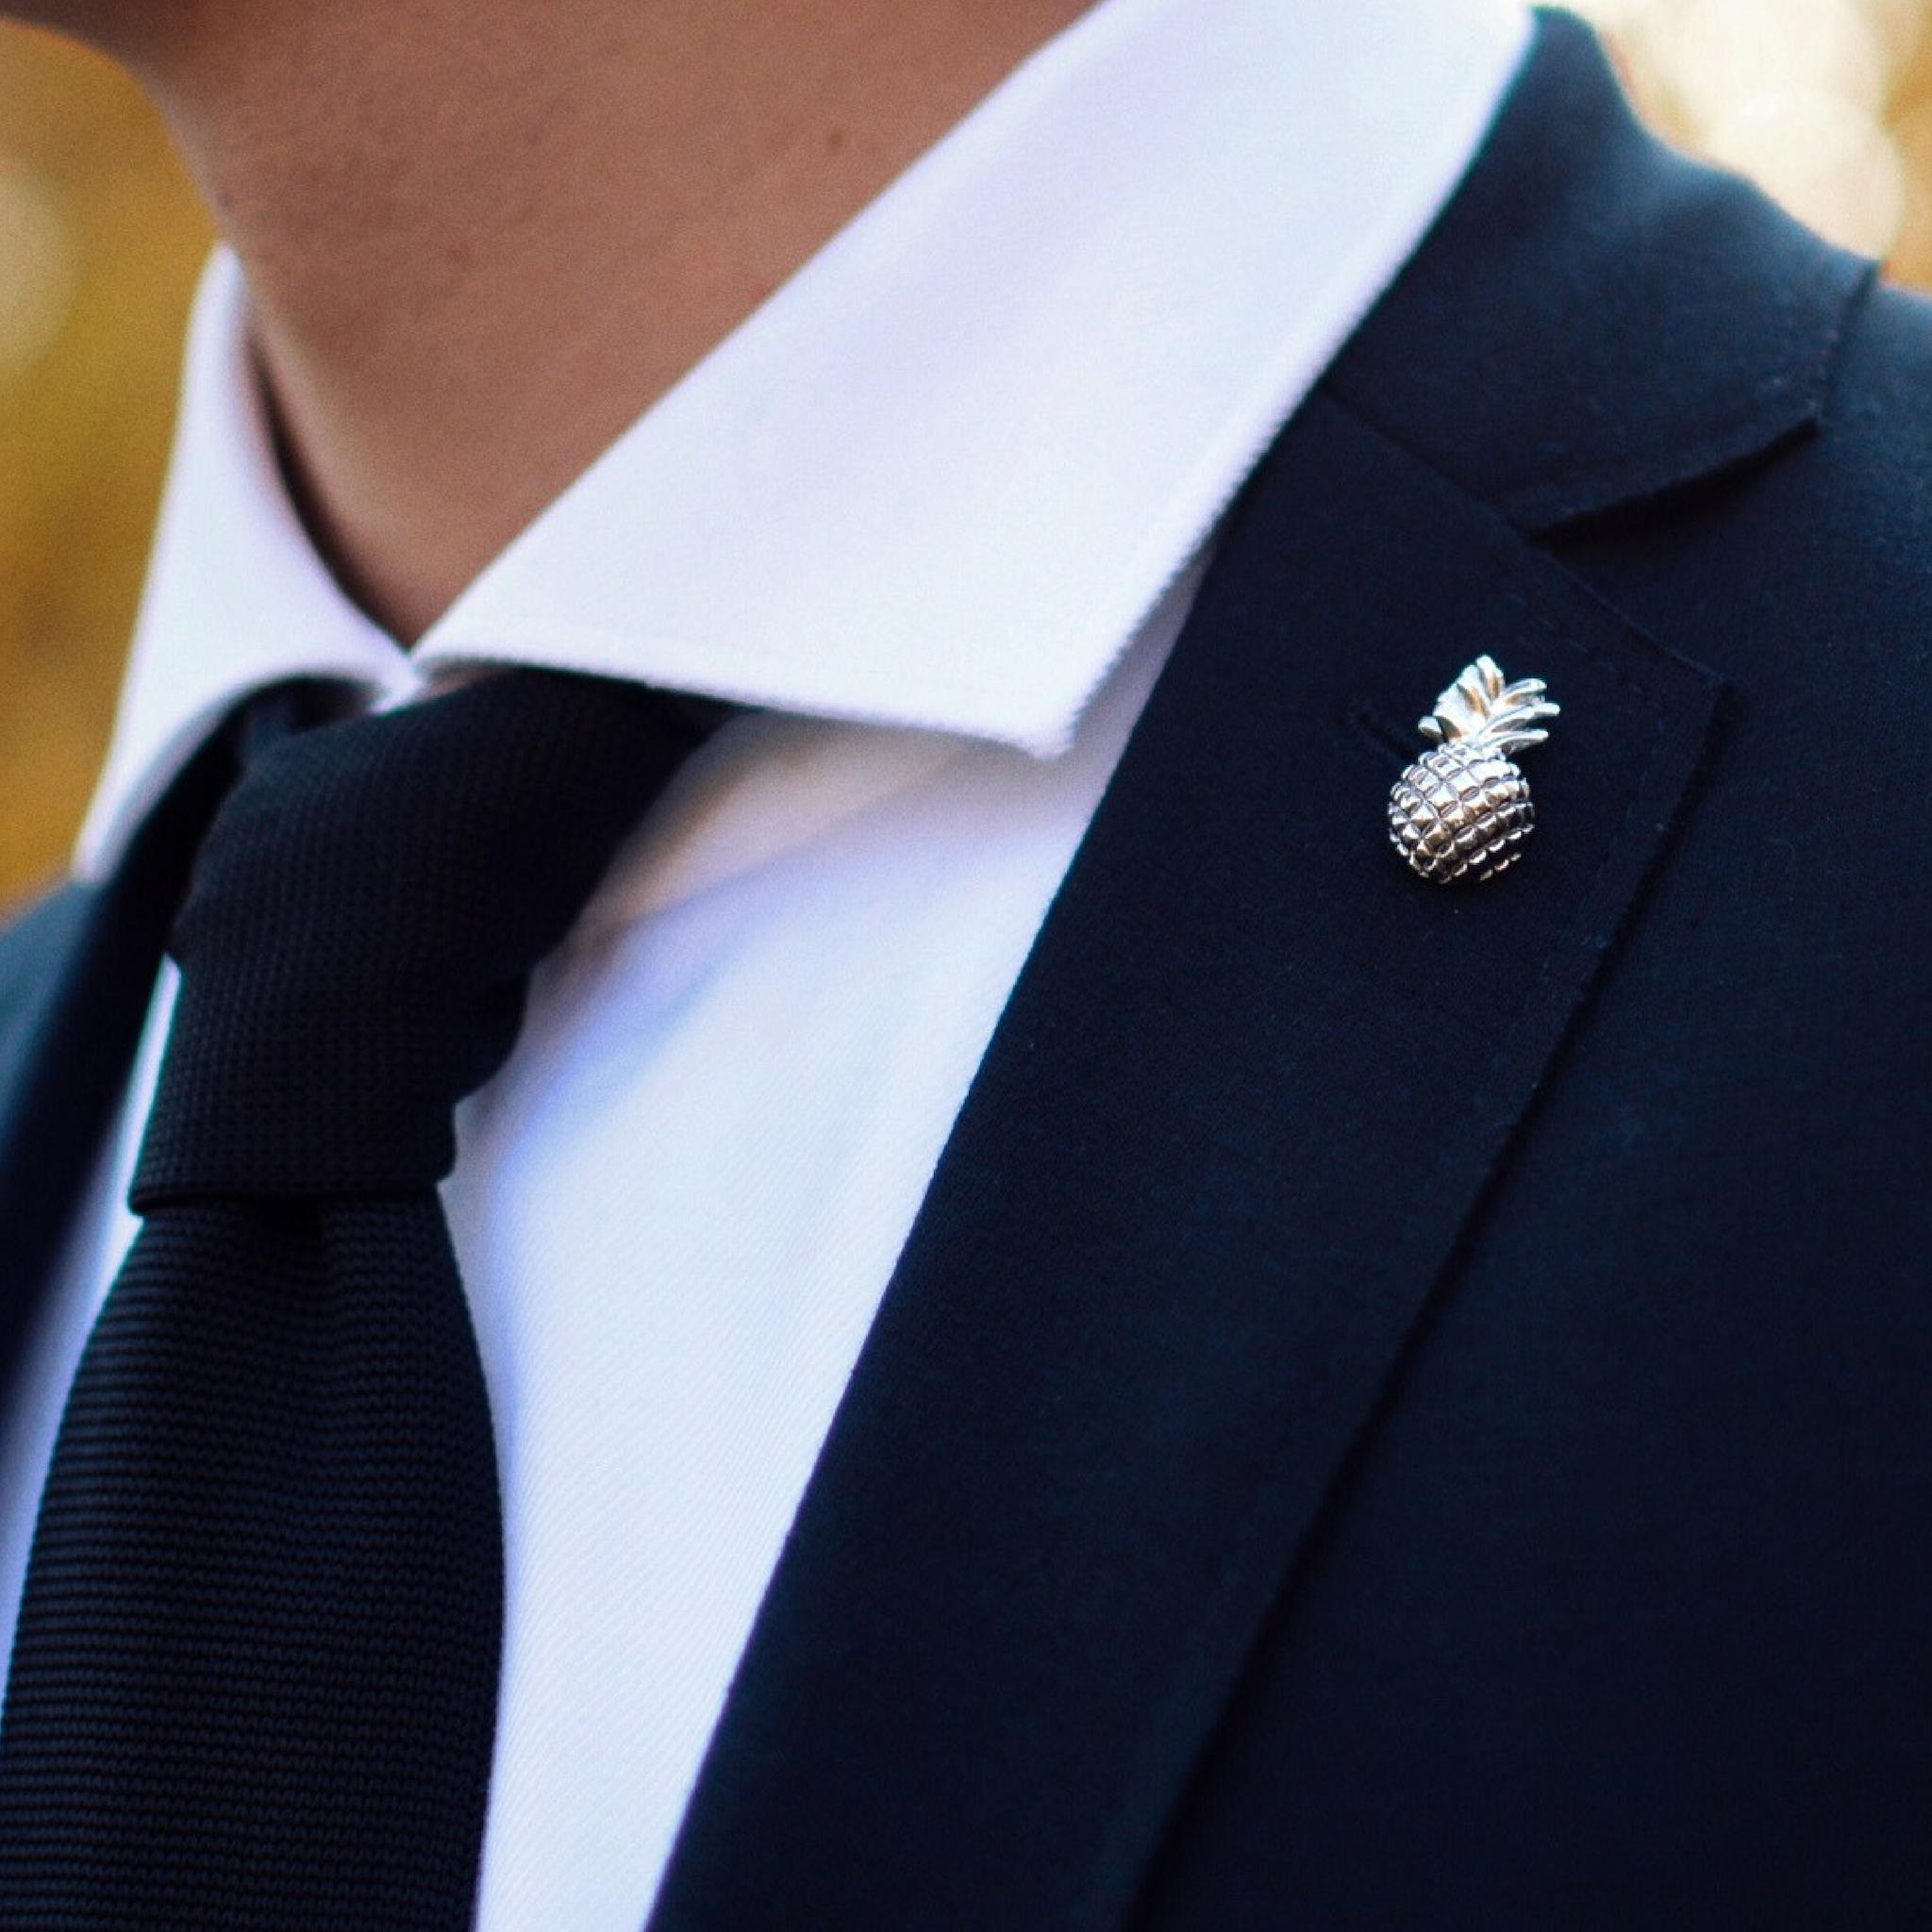 Lapel pin silver pineapple on a suit